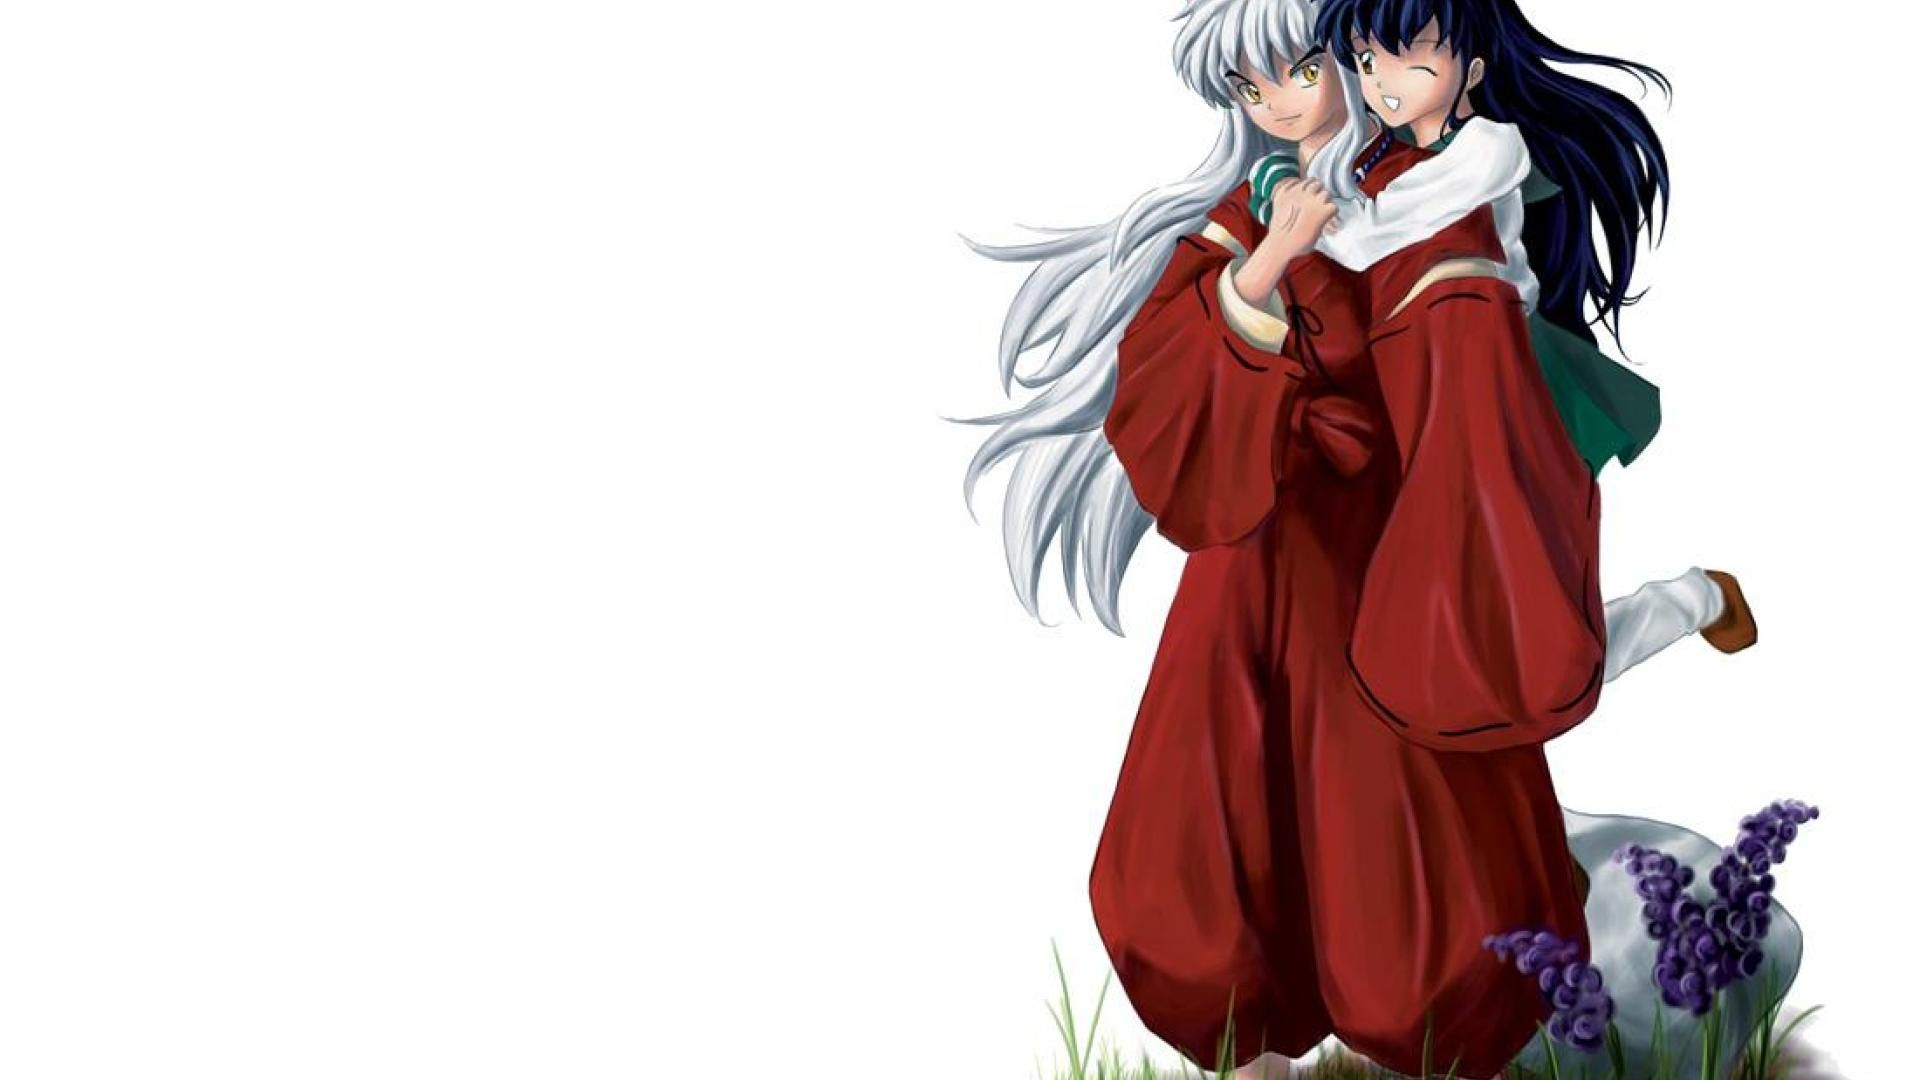 Inuyasha Wallpapers Top Free Inuyasha Backgrounds Wallpaperaccess